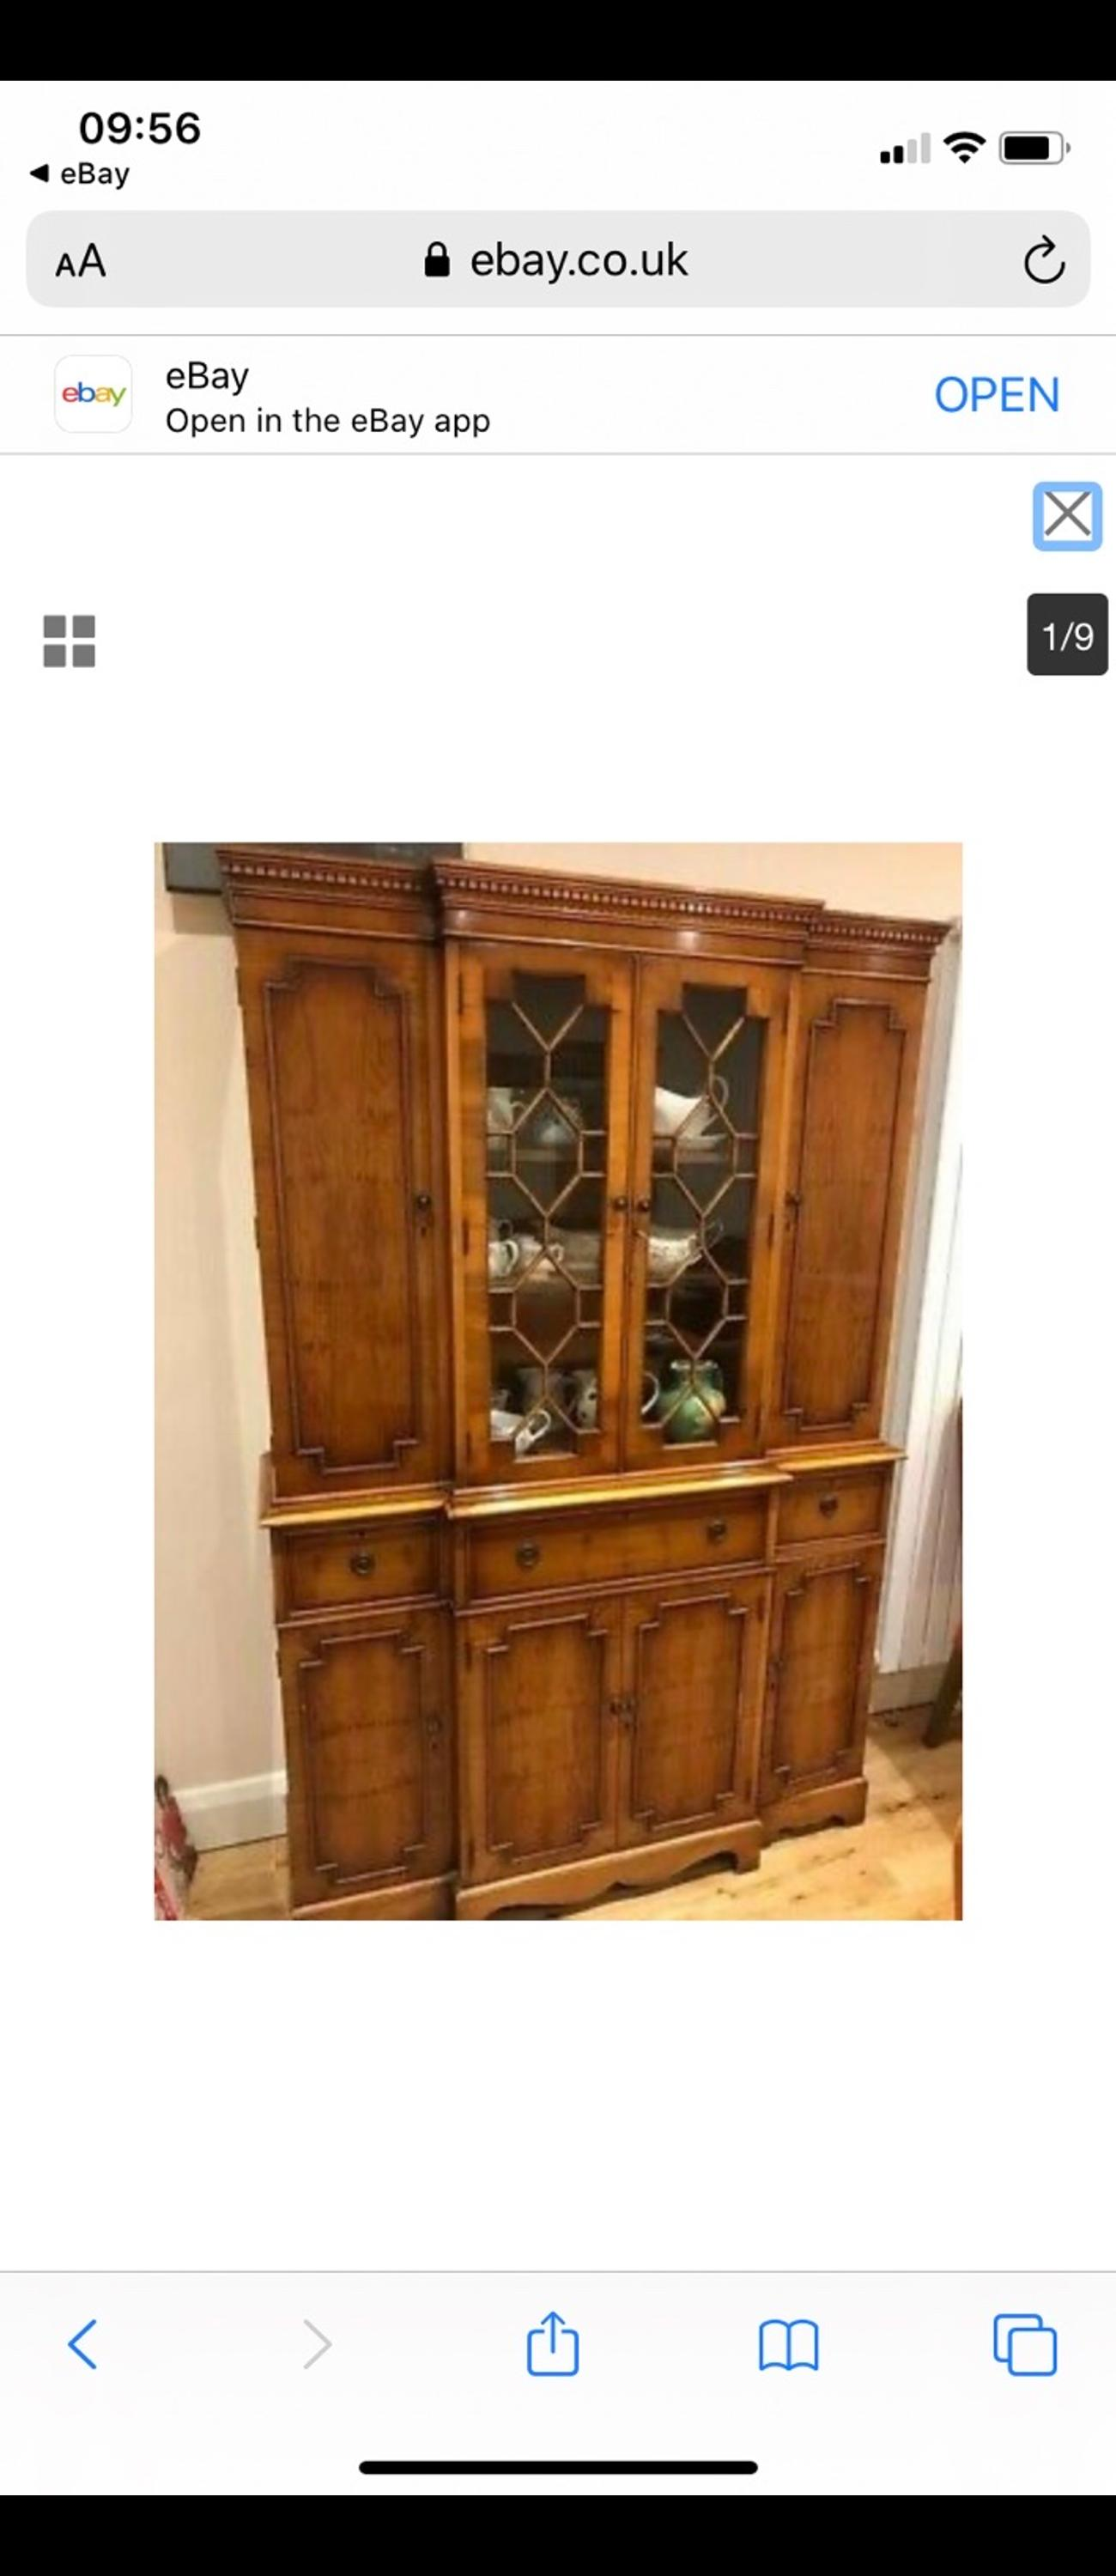 Beautiful Georgian-Style Antique Cabinet with Mahogany Finish in Great Condition!  Selling on someone's behalf as it was too big to be donated to a charity shop. A money donation to the Princess Alice Hospice will be made after the sale.  It's a gorgeous cabinet in amazing condition, nothing to note other than very light signs of wear and tear, and the fact that the top drawer currently blocks when about half open - I'm guessing it's fixable but haven't wanted to force it.  Cabine